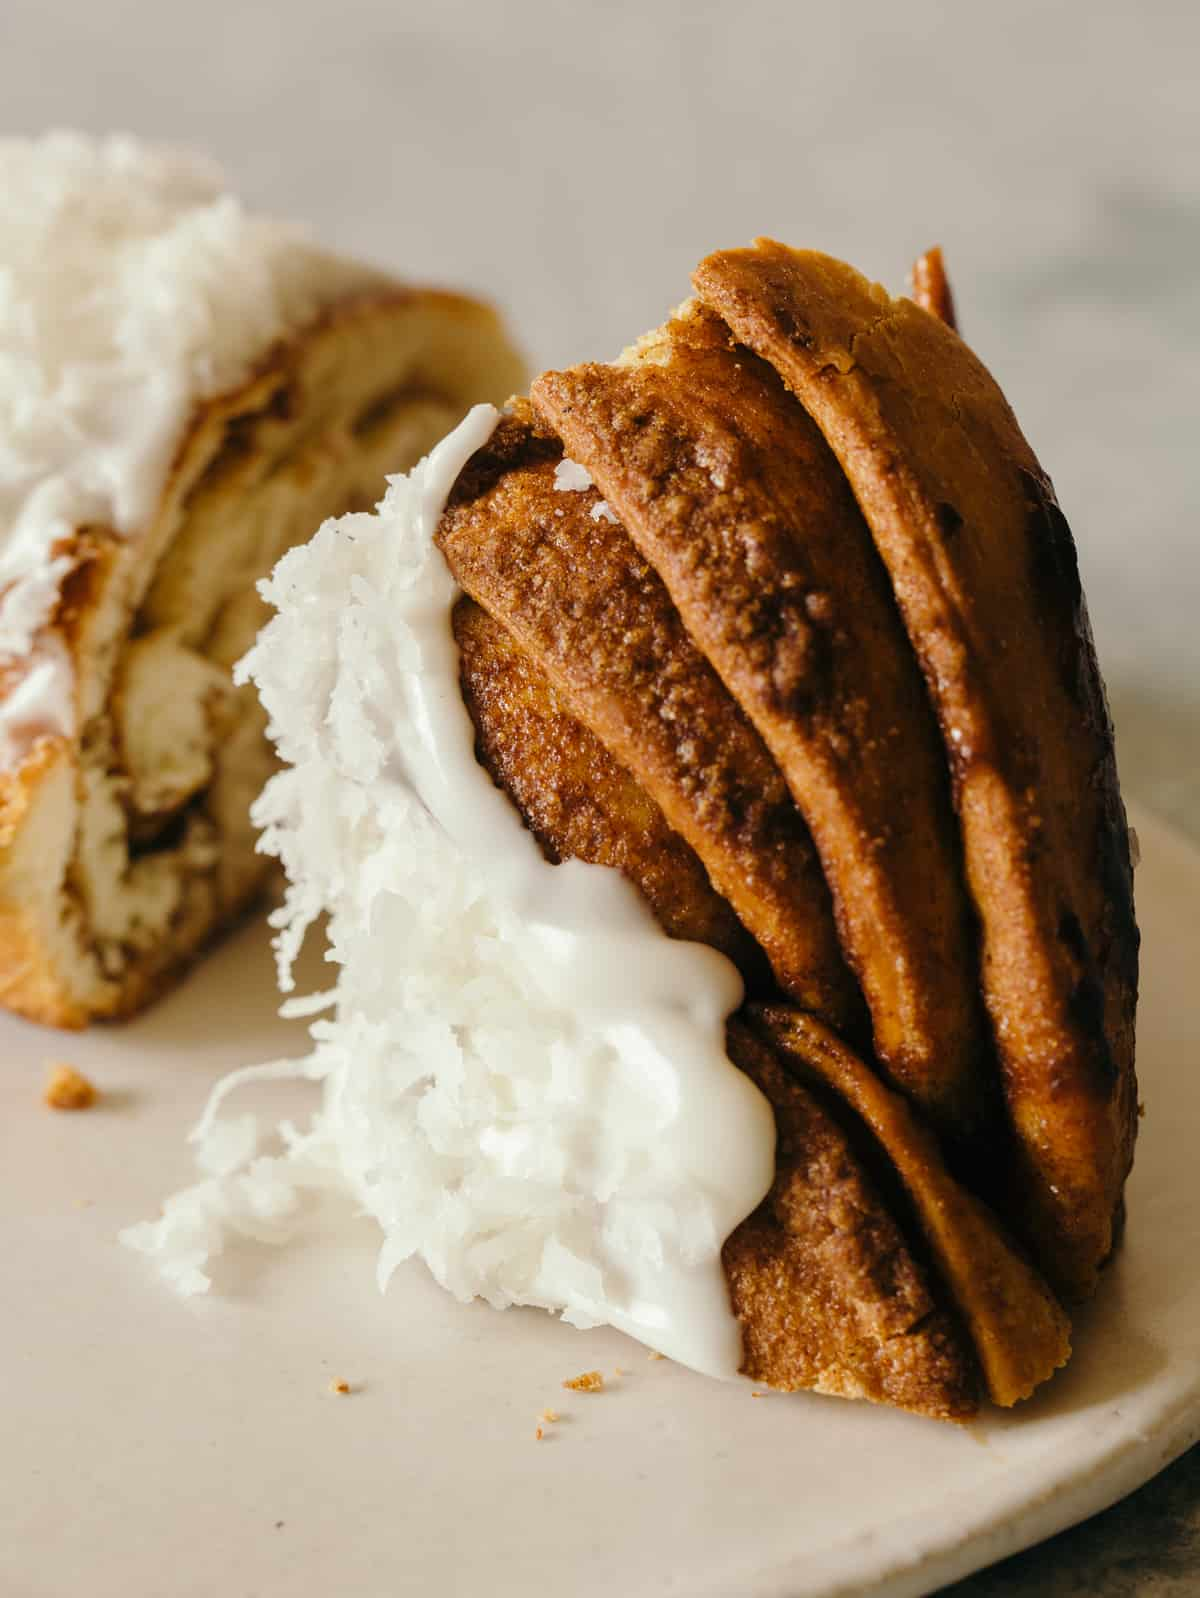 A close up of a slice brown butter braided cinnamon roll cake topped with shredded coconut.